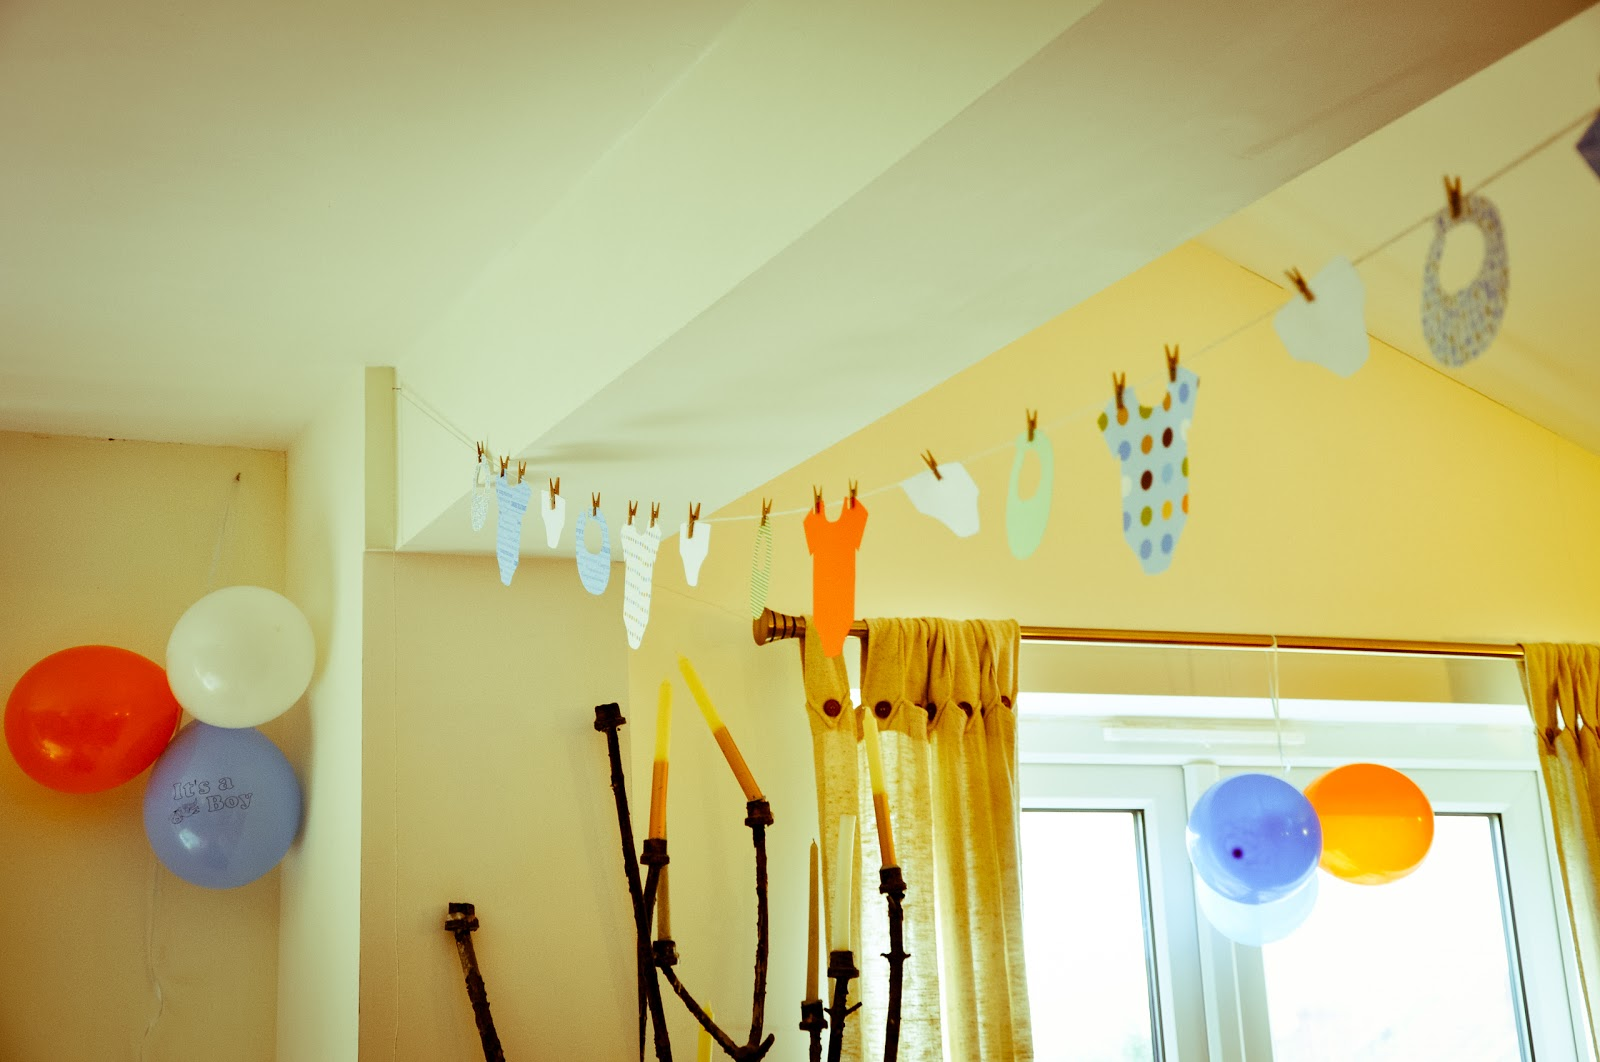 pippa's long stockings: DIY baby shower clothesline bunting